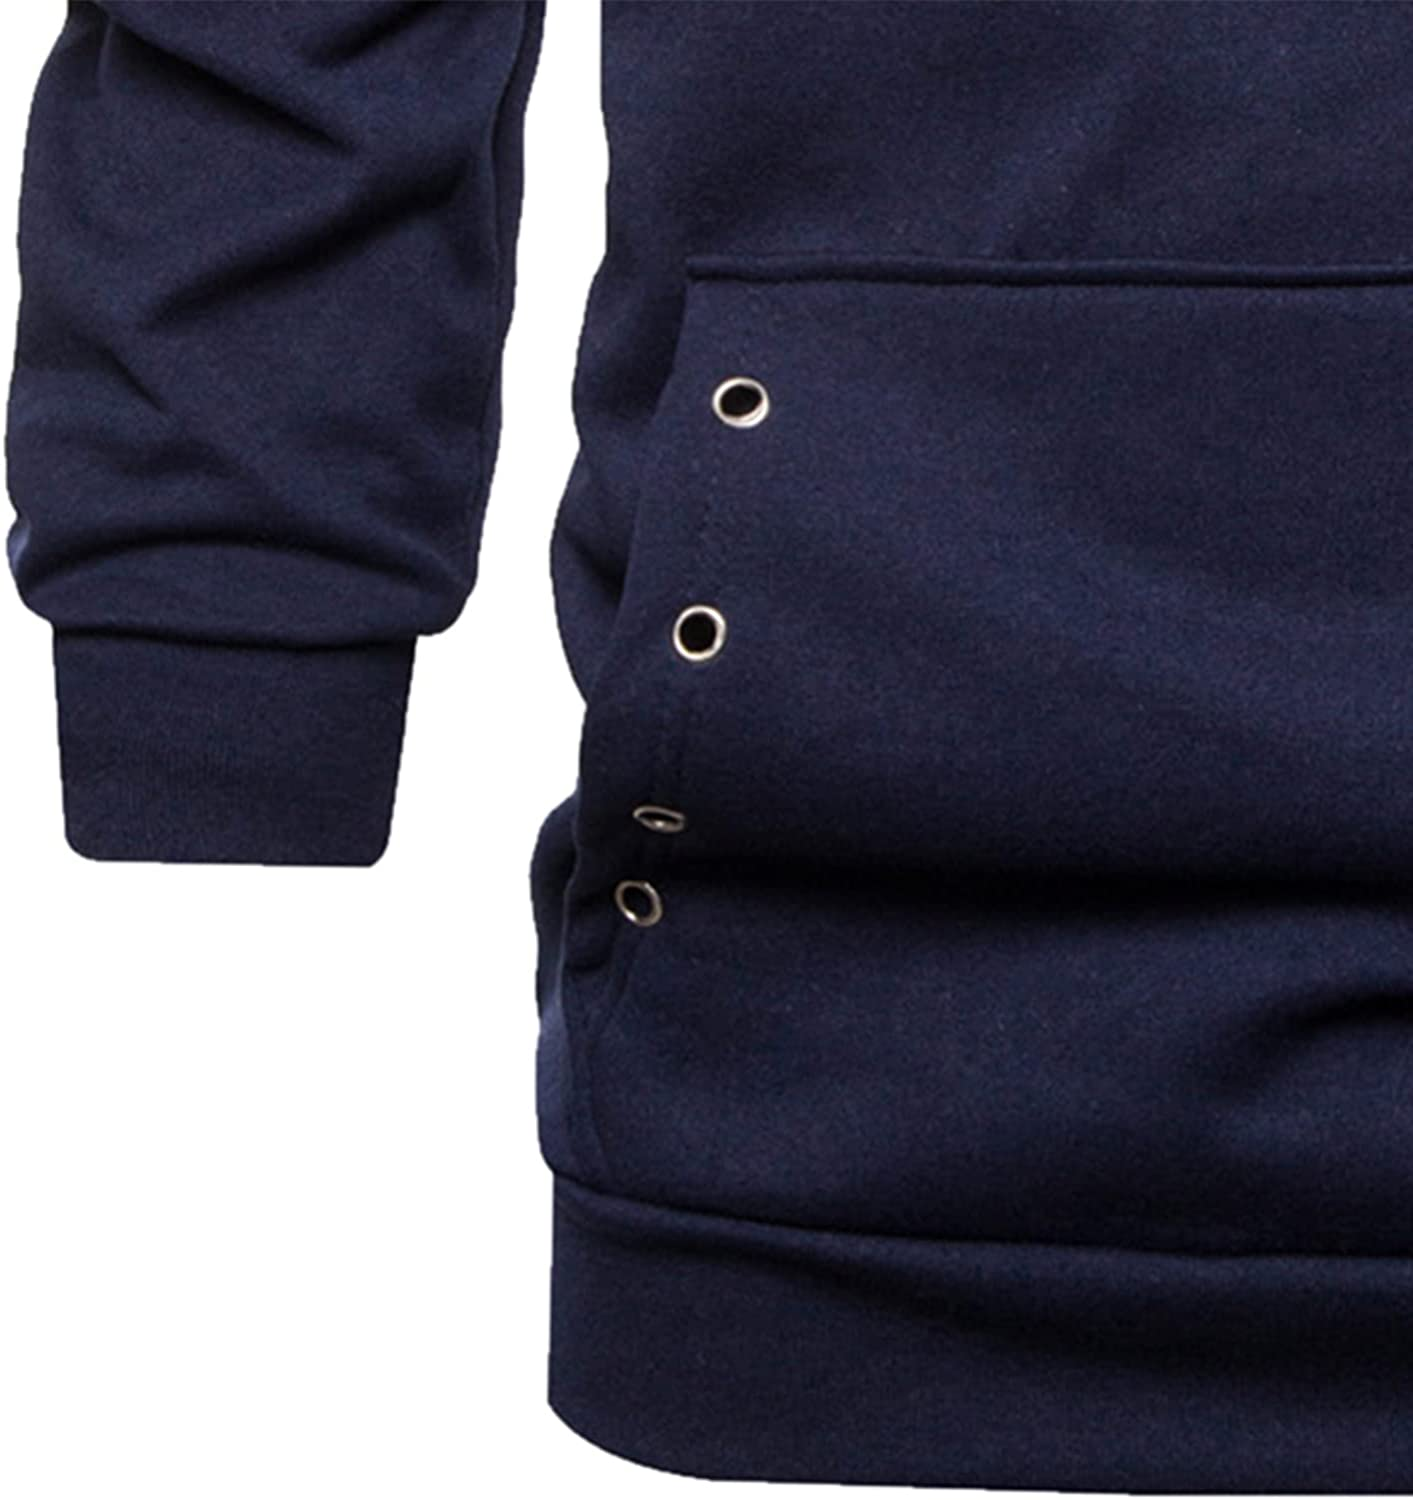 HONGJ Tunic Hoodies for Mens, 2021 Solid Color Drawstring Pullover Fashion Hooded Sweatshirts with Hollow Ring Pocket